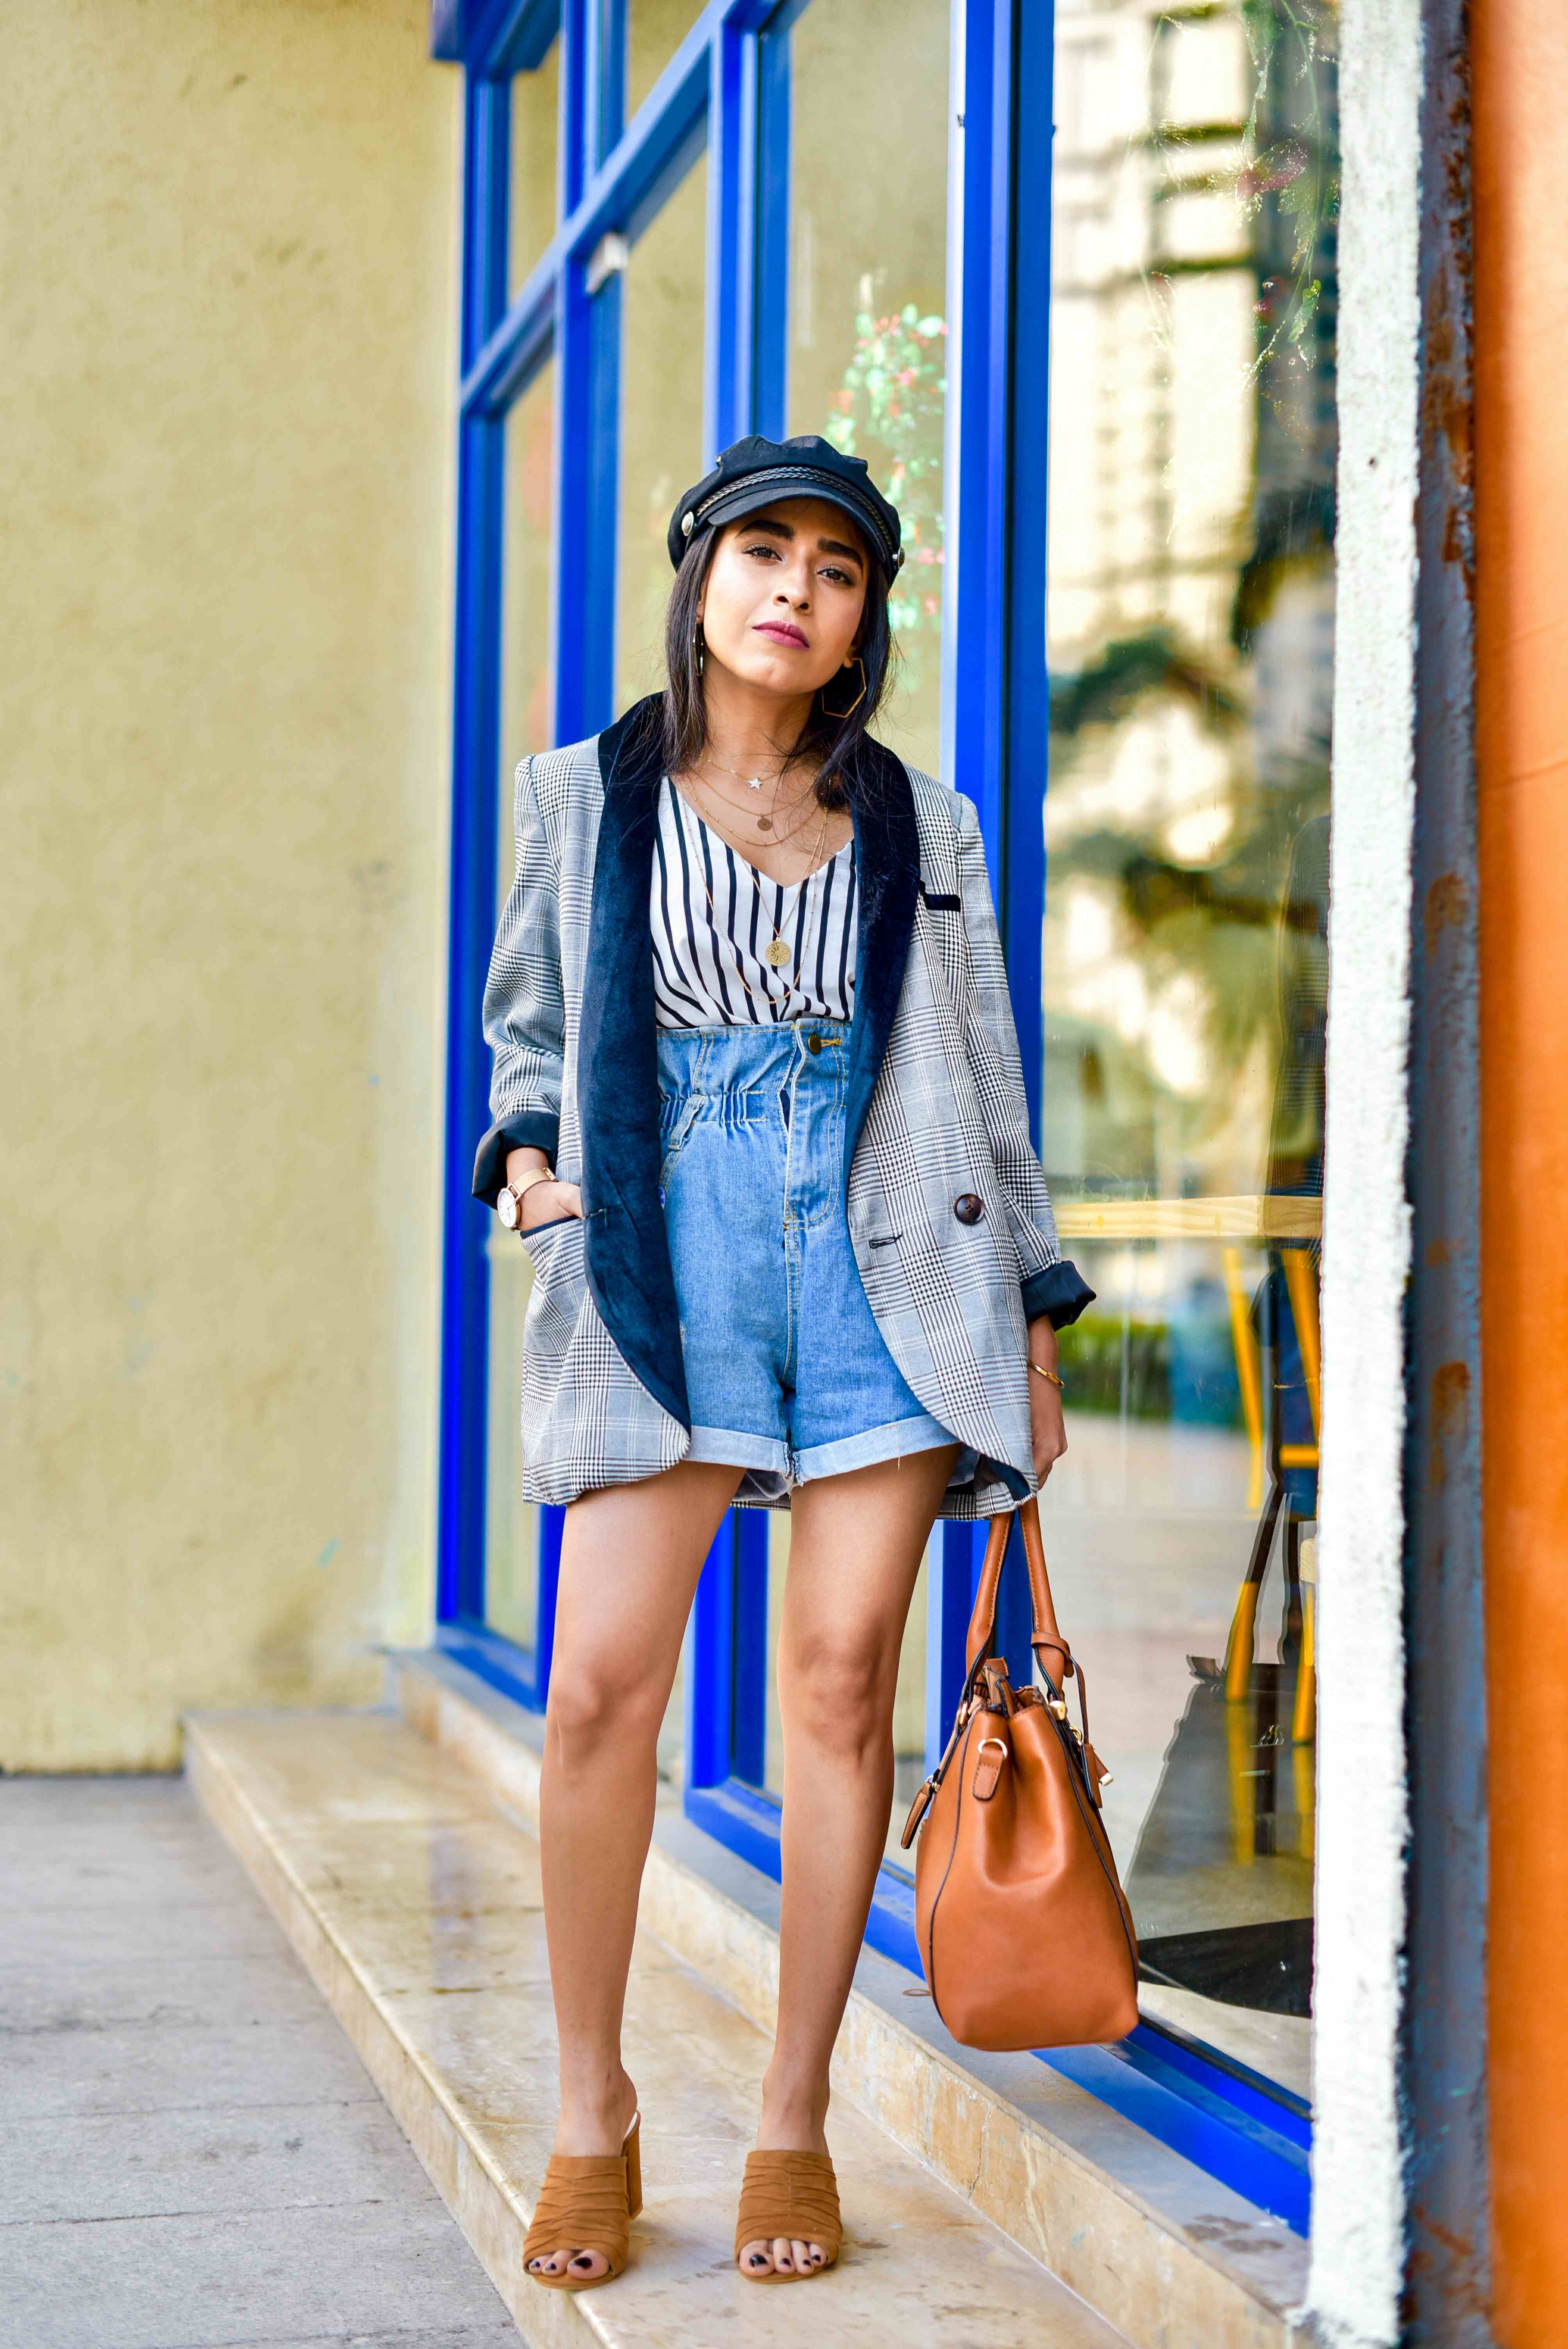 plaid blazer, checks & stripes, black & white, monochrome outfit, ootd, denim shorts, tan accessories, shein, romwe, indian fashion, lakme fashion week, indian street style, blazer outfit, casual blazer outfit,